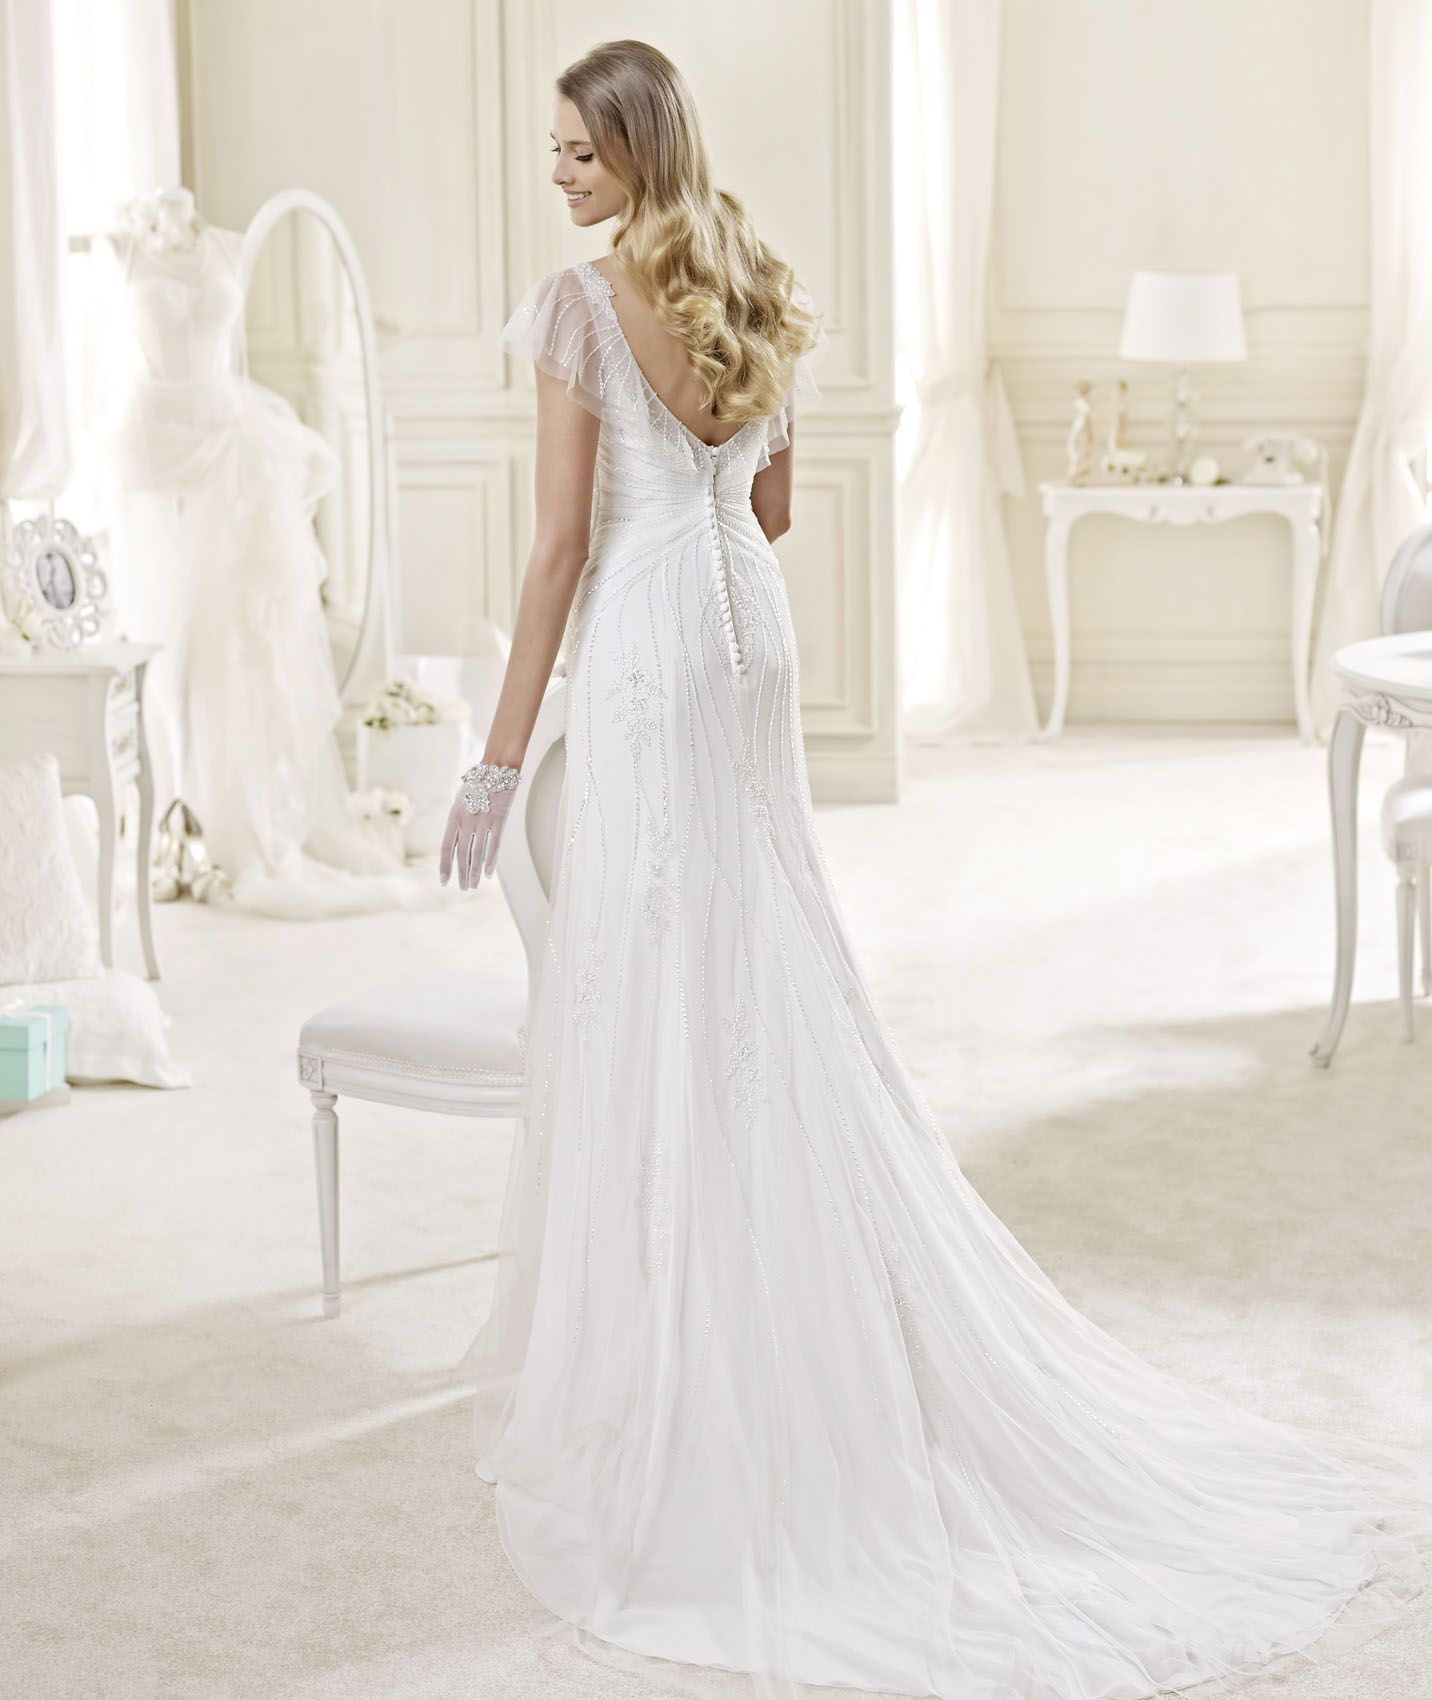 Long sleeve ivory wedding dress  Nicole Spose  Collection  WEDDING GOWN LOVE   Pinterest